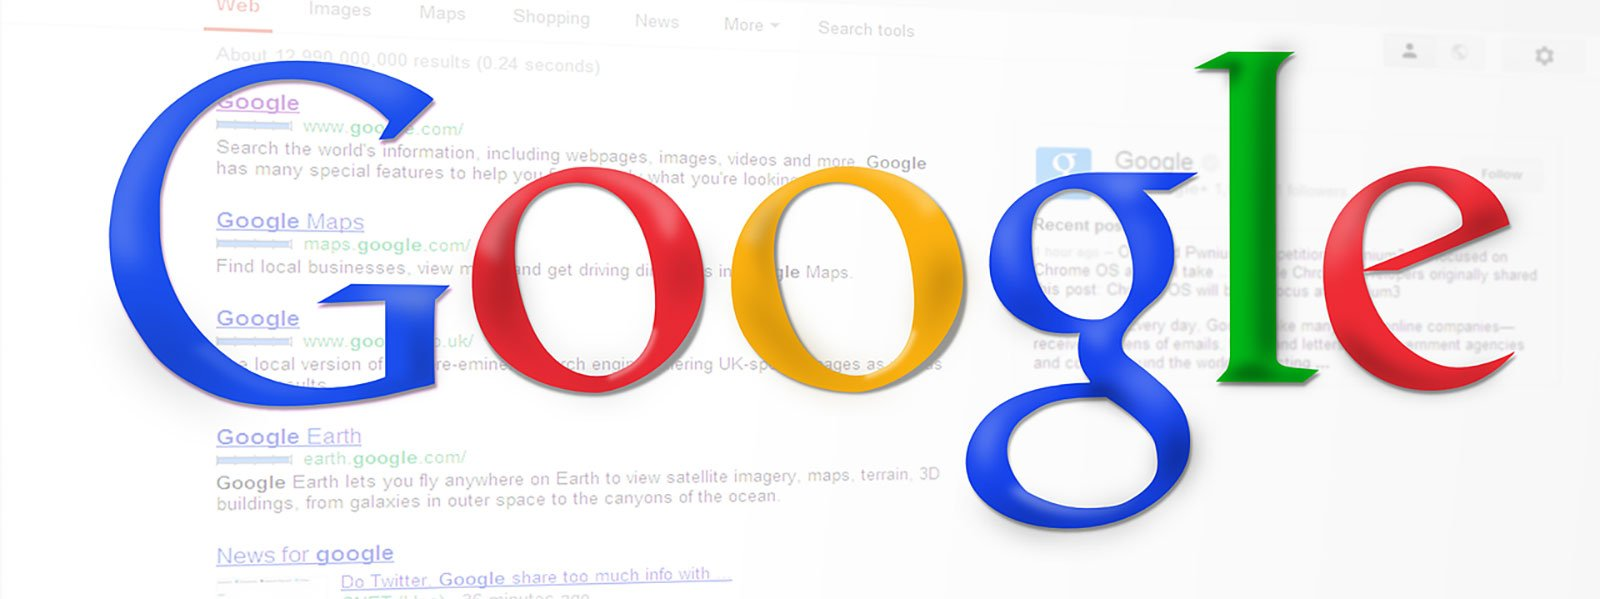 Google Search Working on Adding Video to Search Results